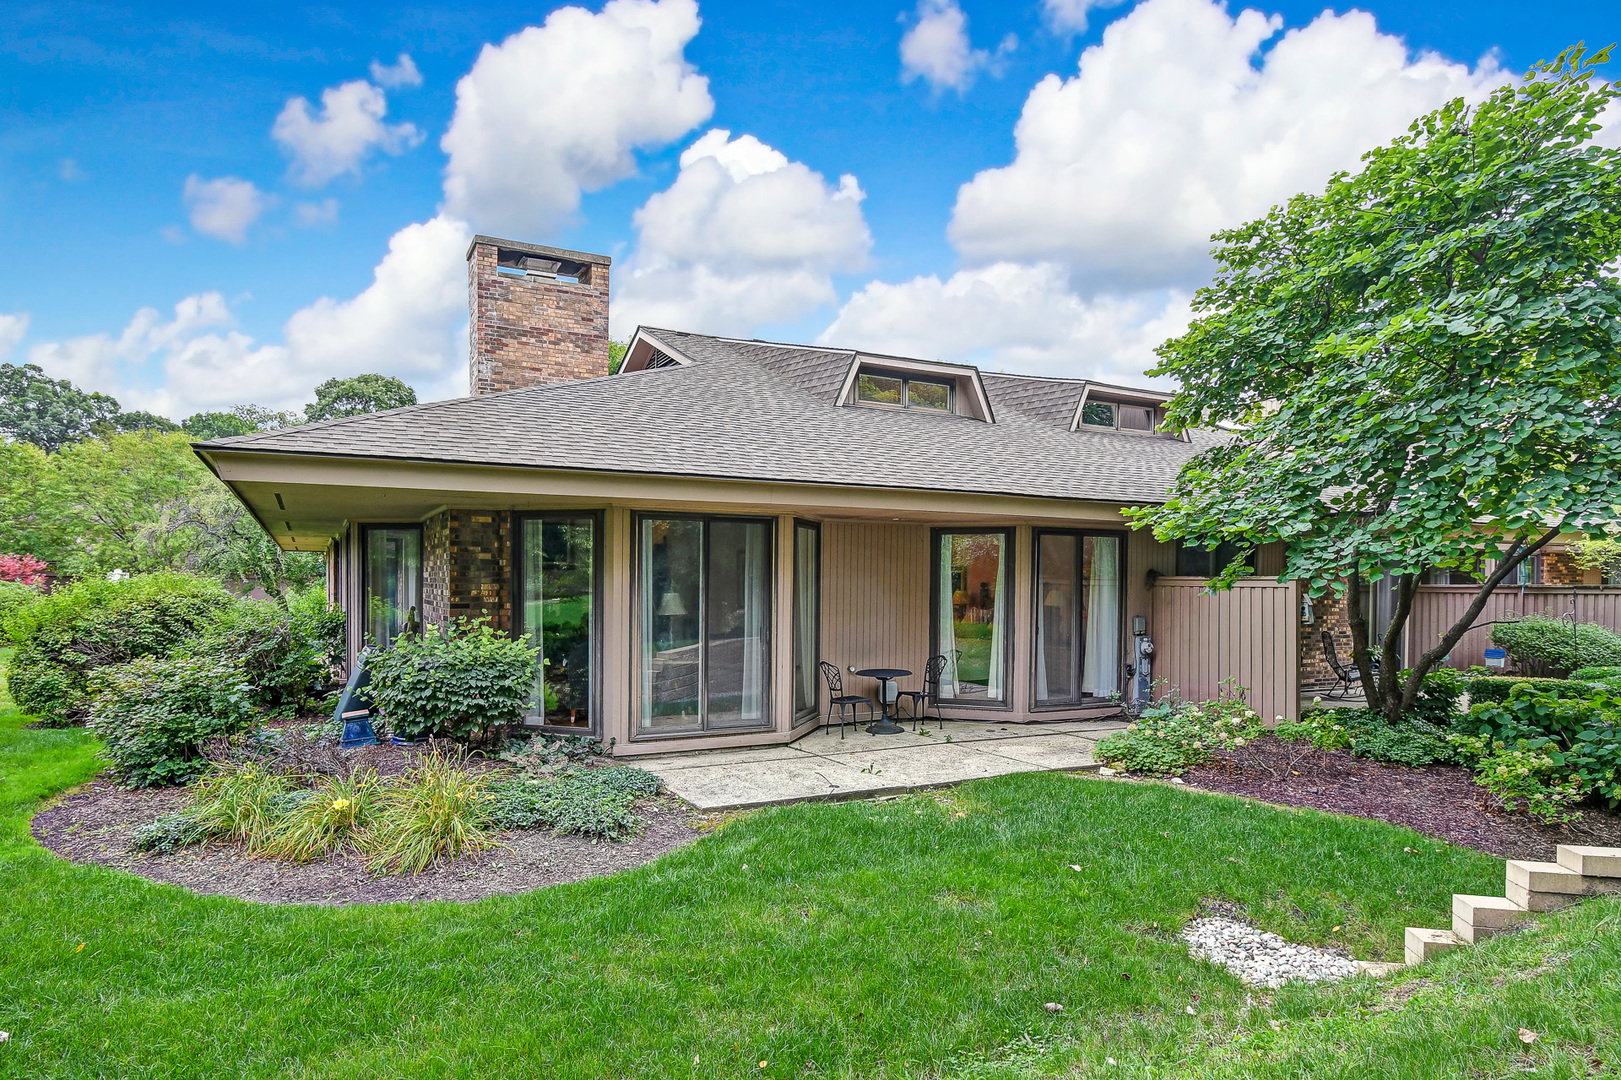 1222 Indian Trail 4F, Hinsdale, Illinois, 60521